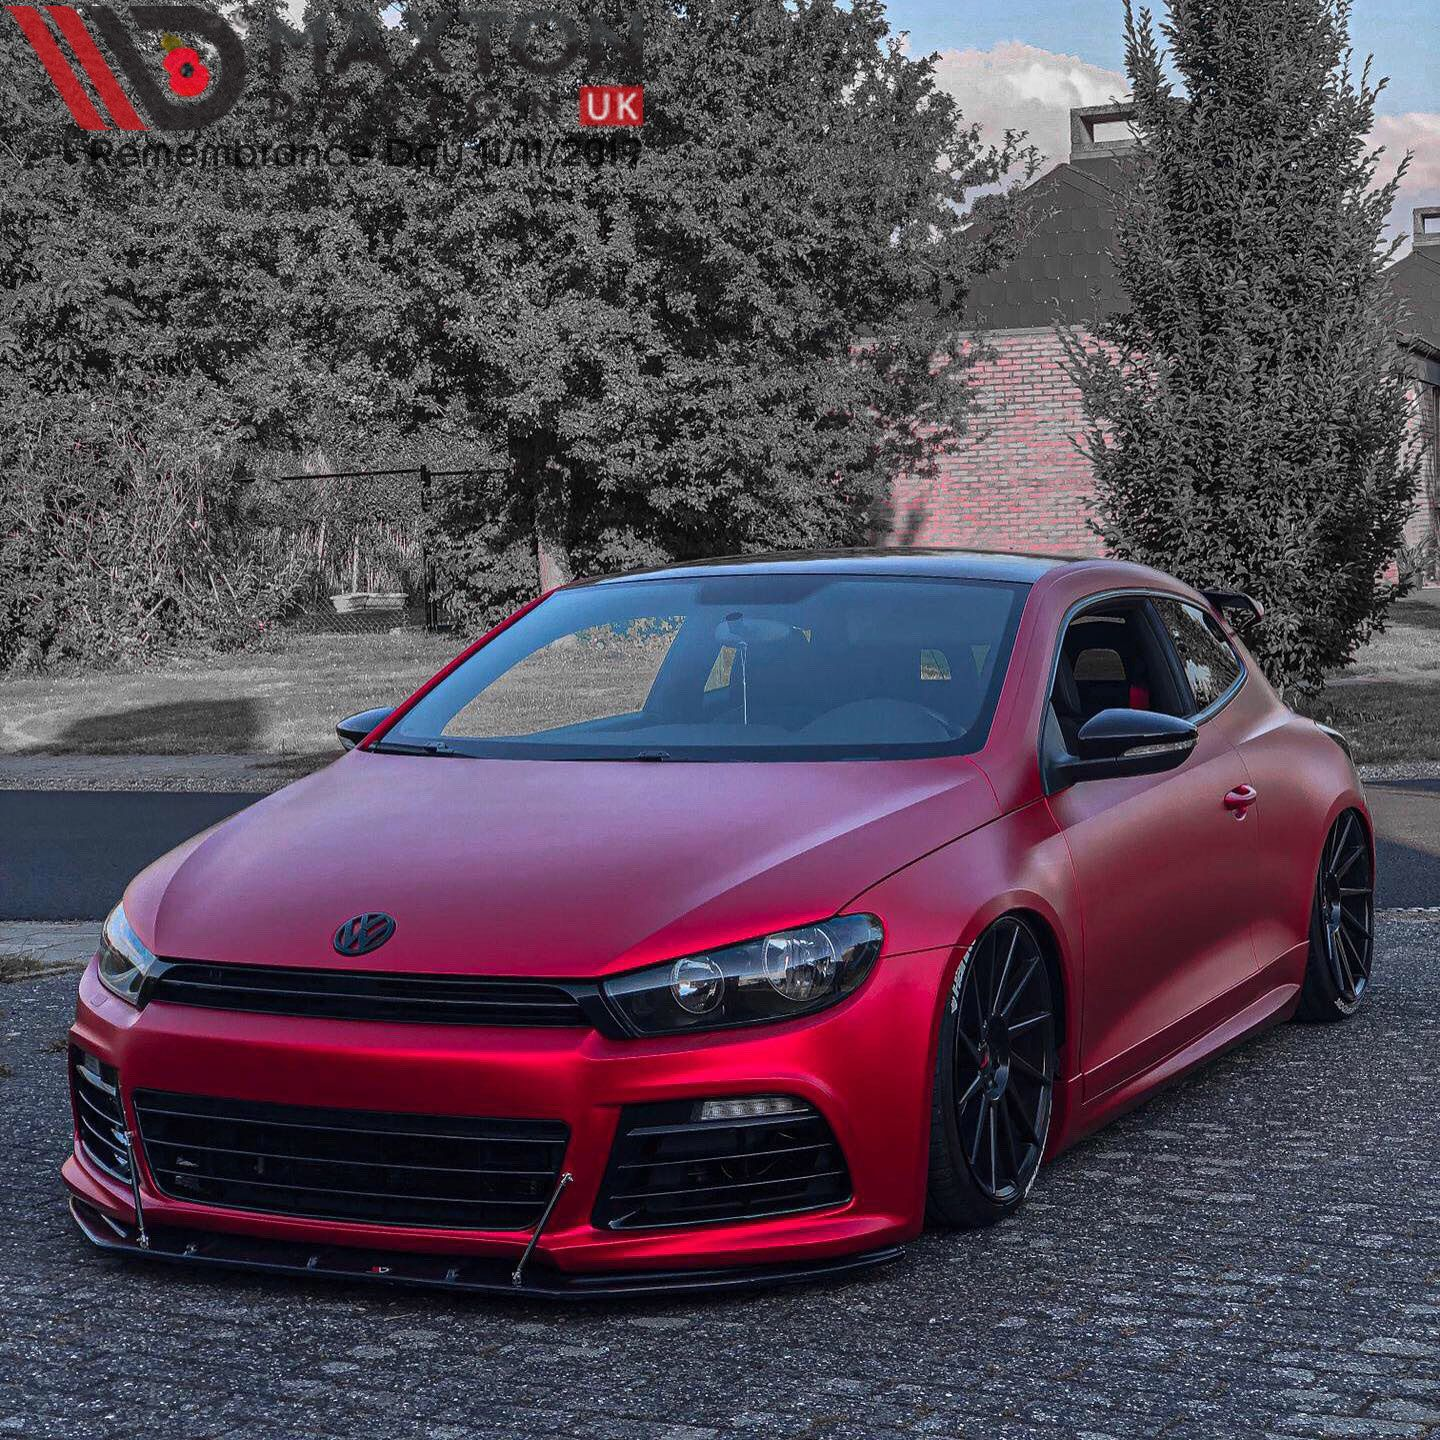 All Wrapped Up For Winter Glengoossens Instagram Showcasing Our Front Splitter Maxtondesign Maxtondesignuk Maxton Vw Scirocco Vw Cars Dream Cars Bmw